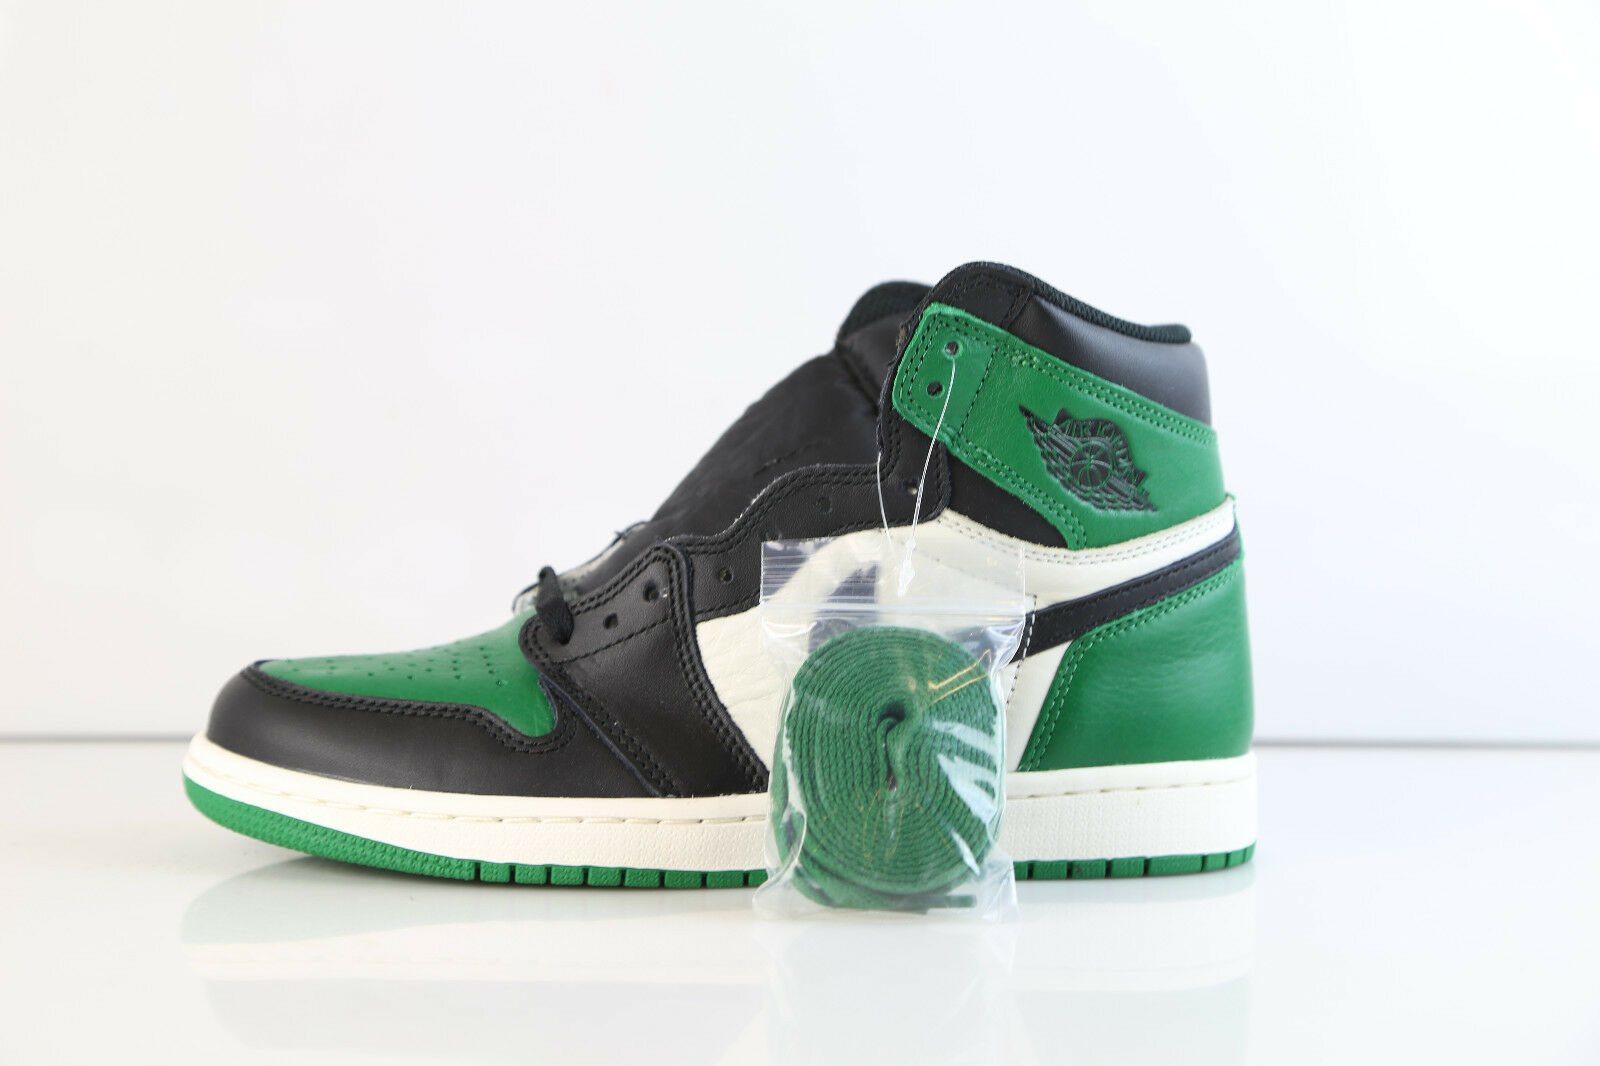 Nike Air Jordan Retro 1 High OG Pine Pine Pine verde Sail nero 555088-302 8-14 summit 3 1 e7e416